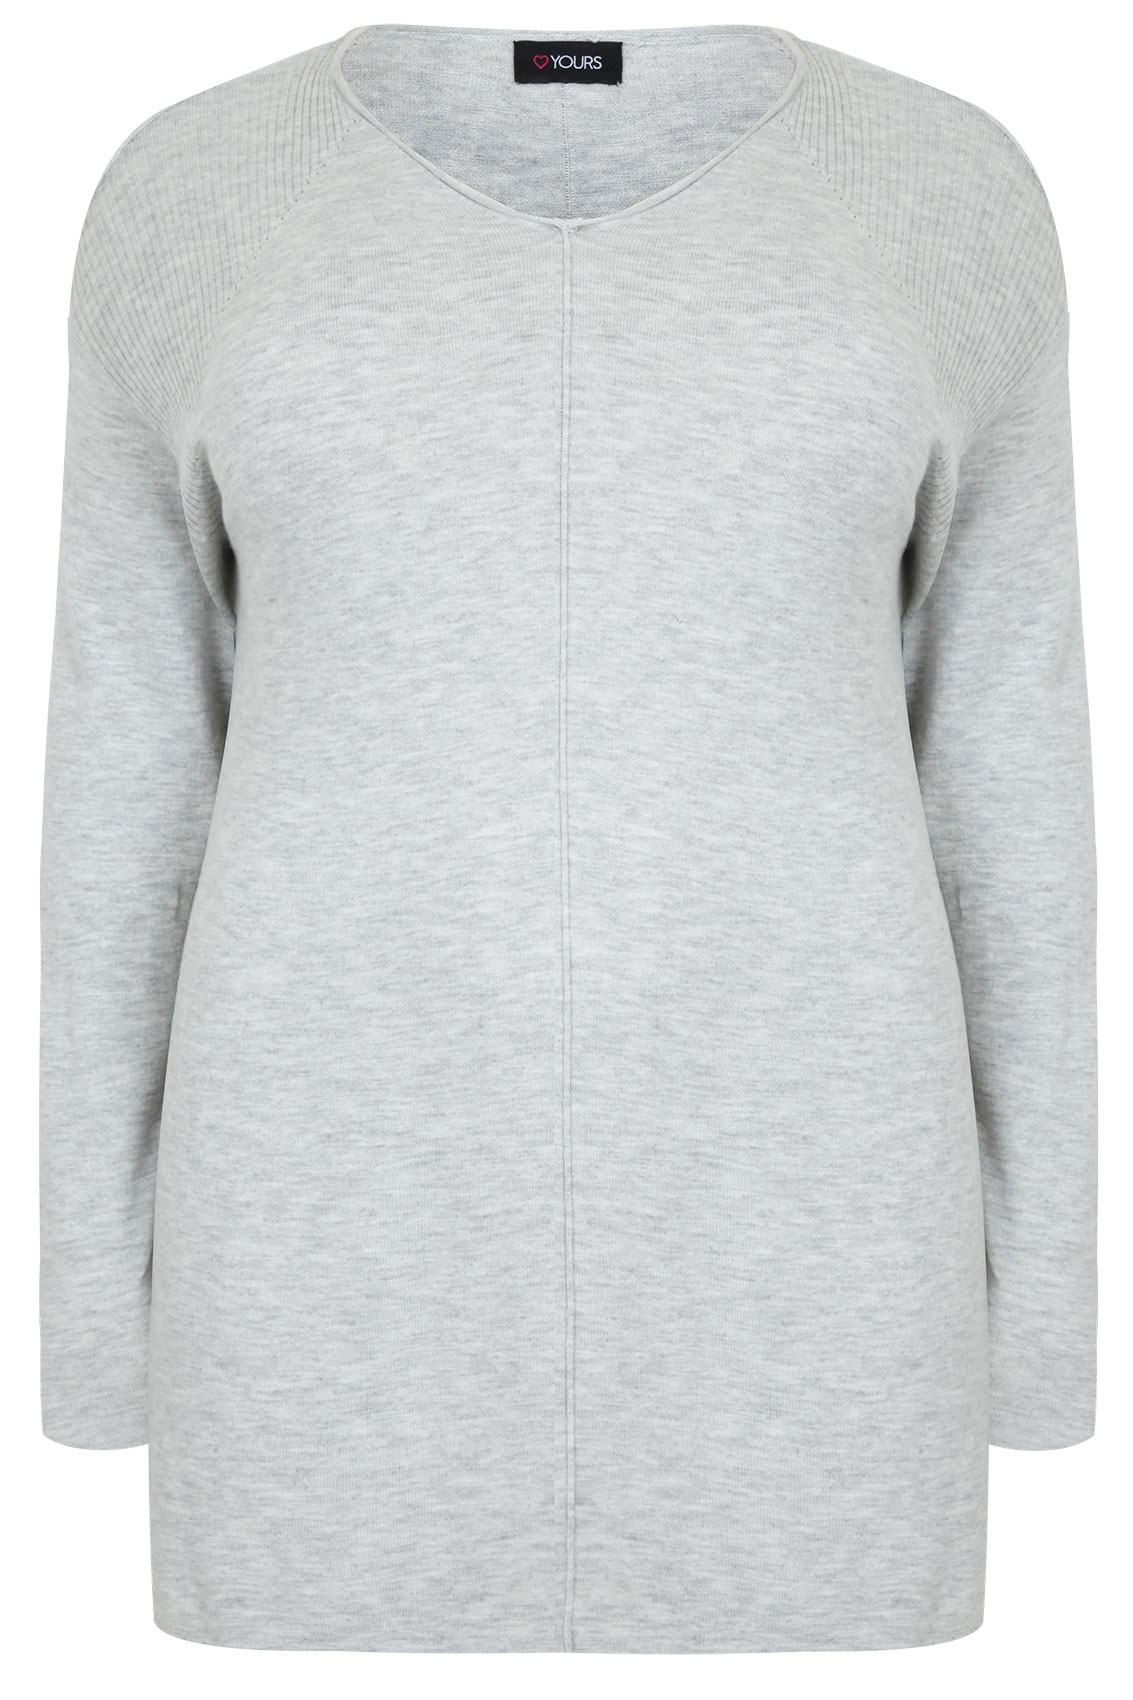 Grey Marl Knitted Longline Jumper With Ribbing Detail Plus Size 16 to 32